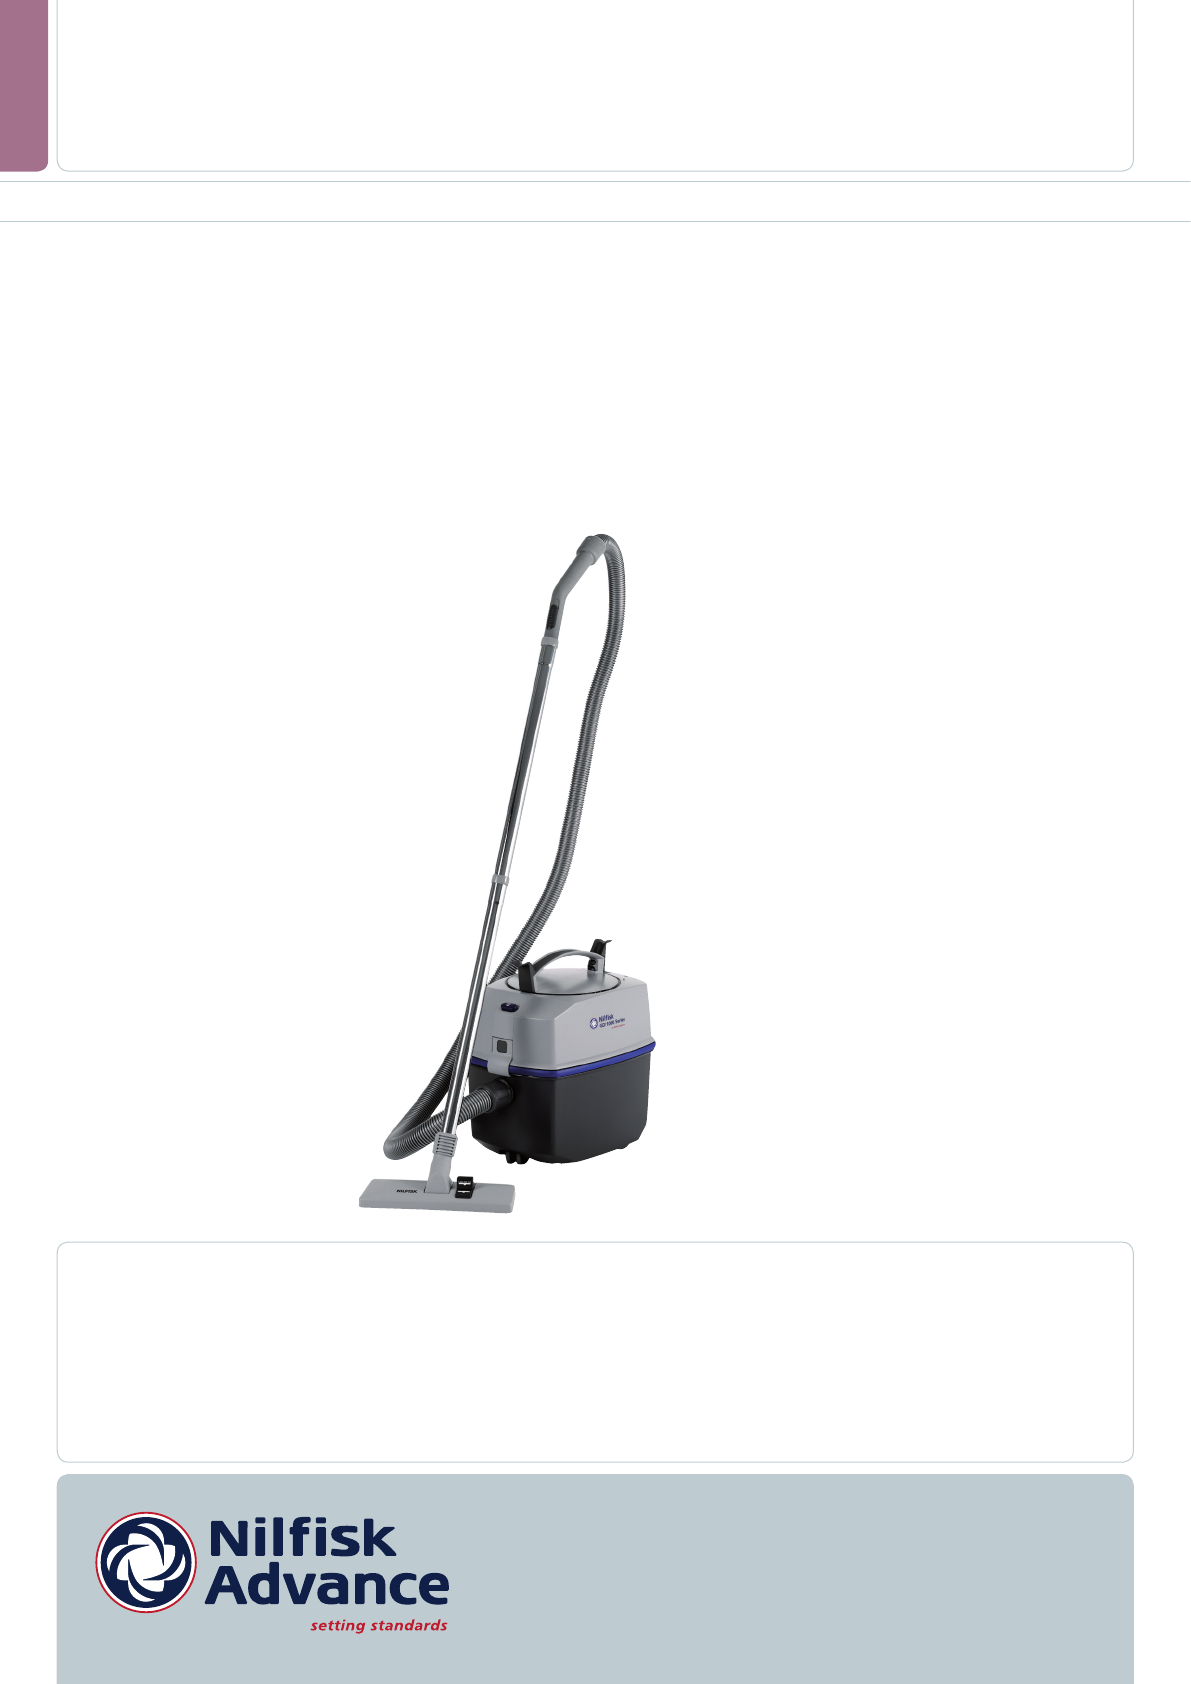 nilfisk advance america vacuum cleaner gd 1000 series user. Black Bedroom Furniture Sets. Home Design Ideas